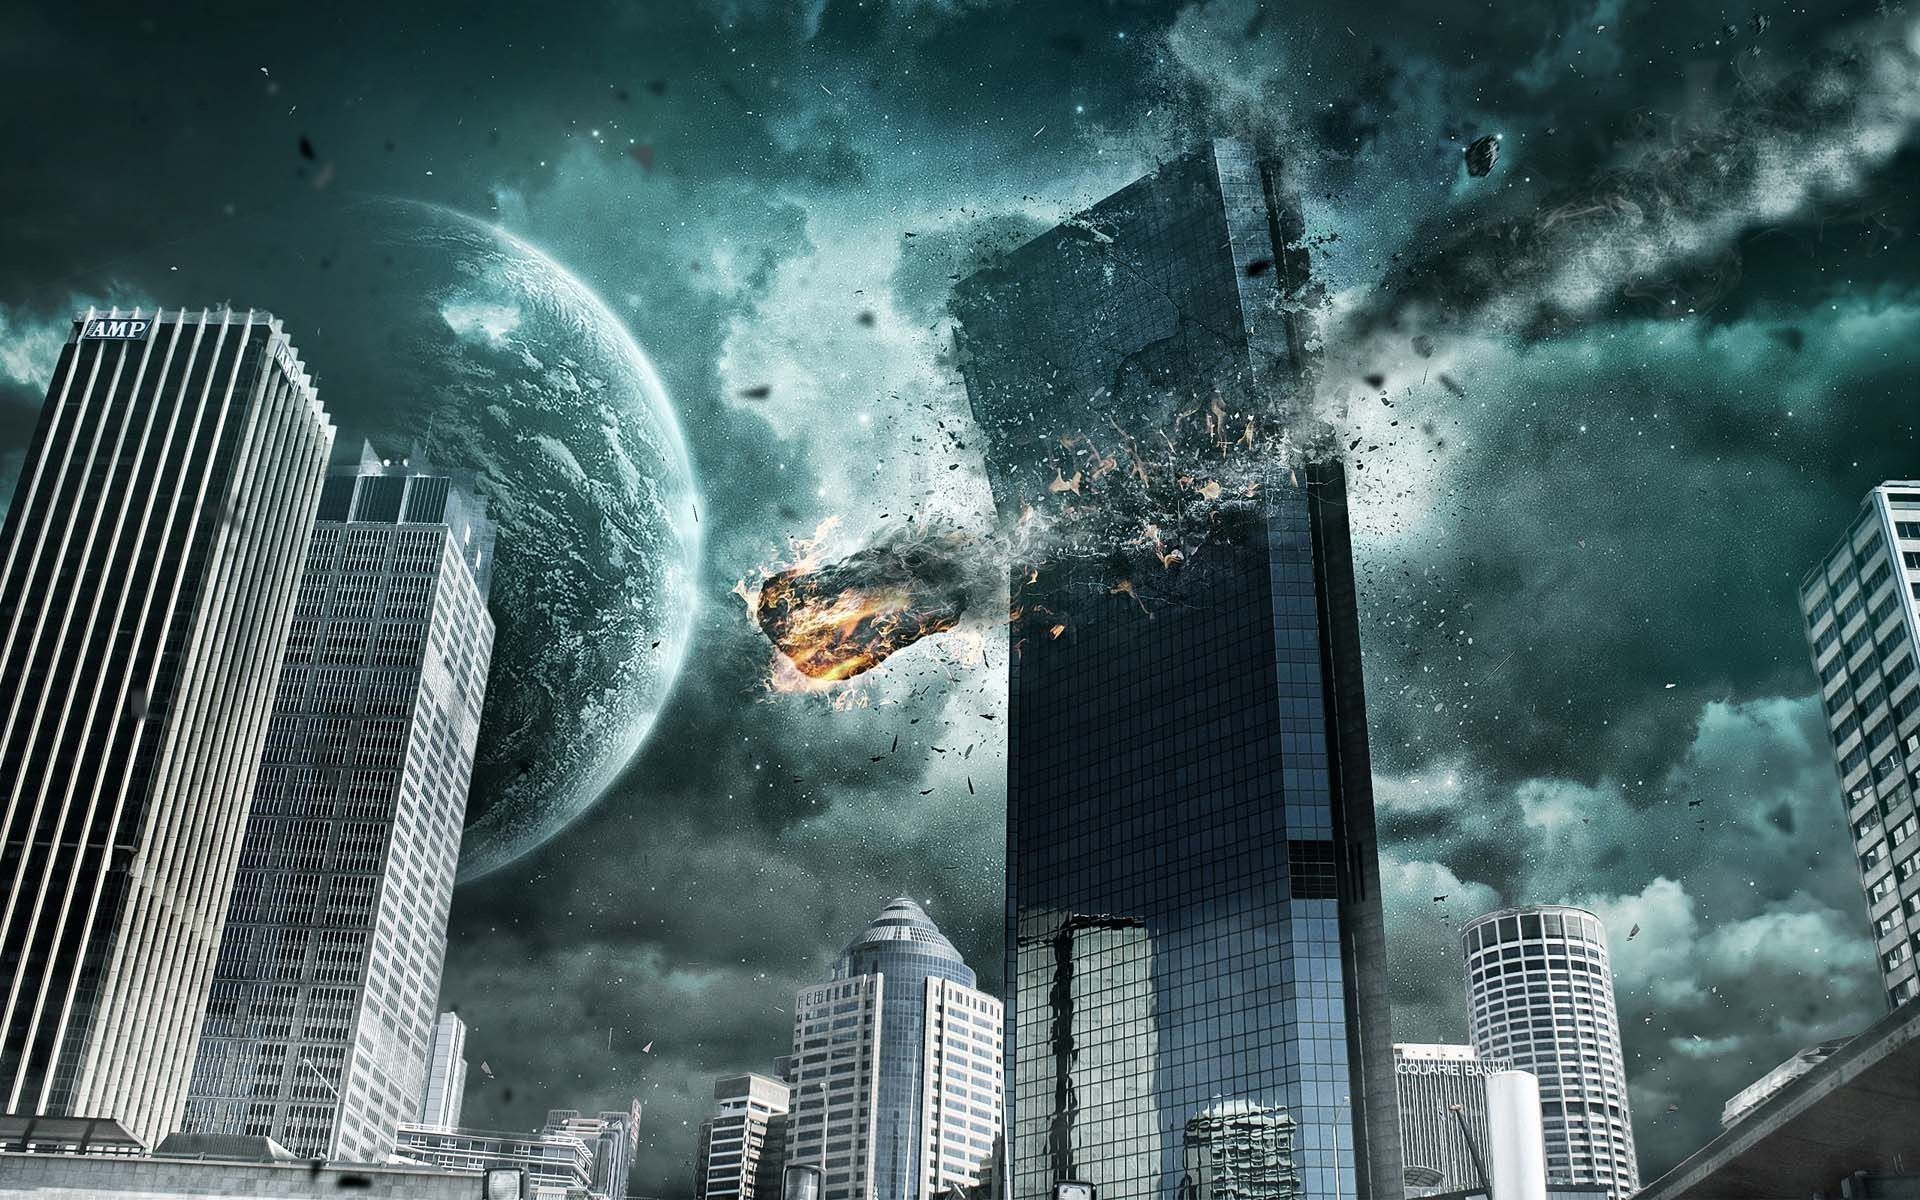 1920x1200 city destroyed by aliens 4k ultra hd backgrounds wallpaper 1920x1200 city destroyed by aliens 4k ultra hd backgrounds wallpaper voltagebd Images